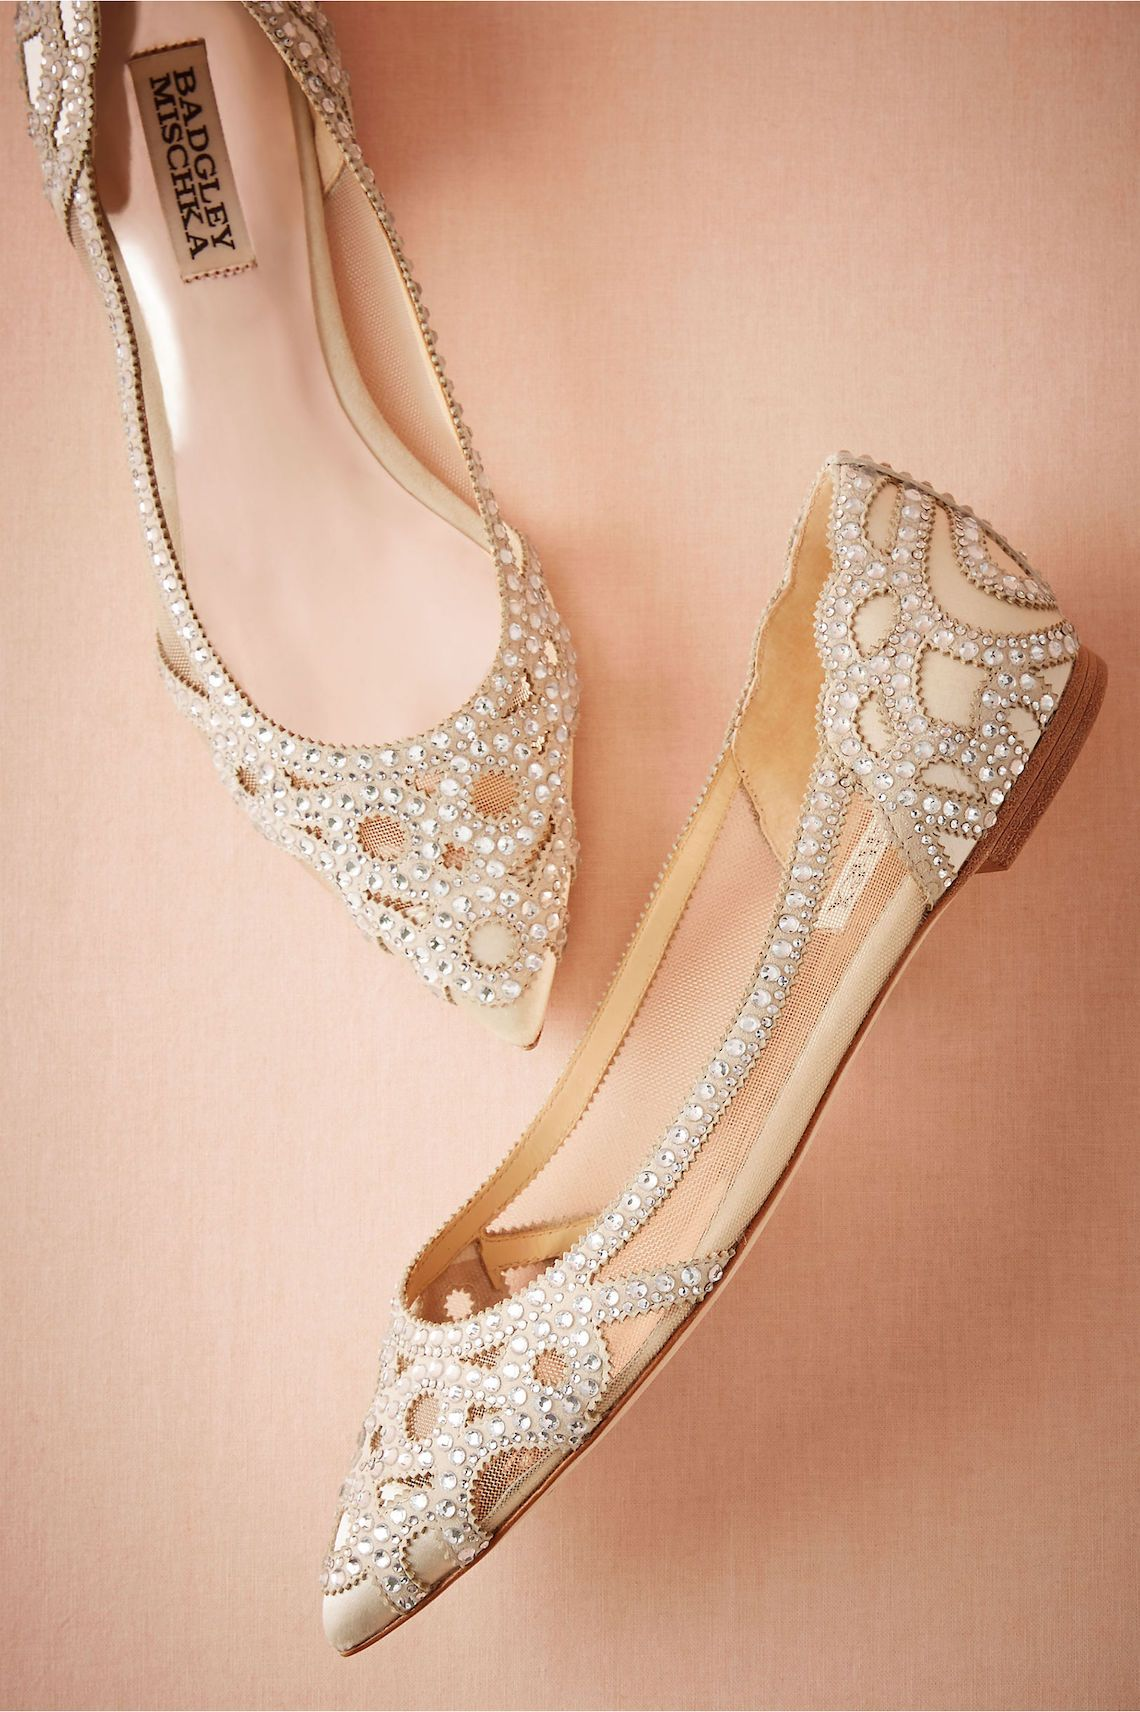 a31703dbbb91 10 Flat Wedding Shoes (That Are Just As Chic As Heels)